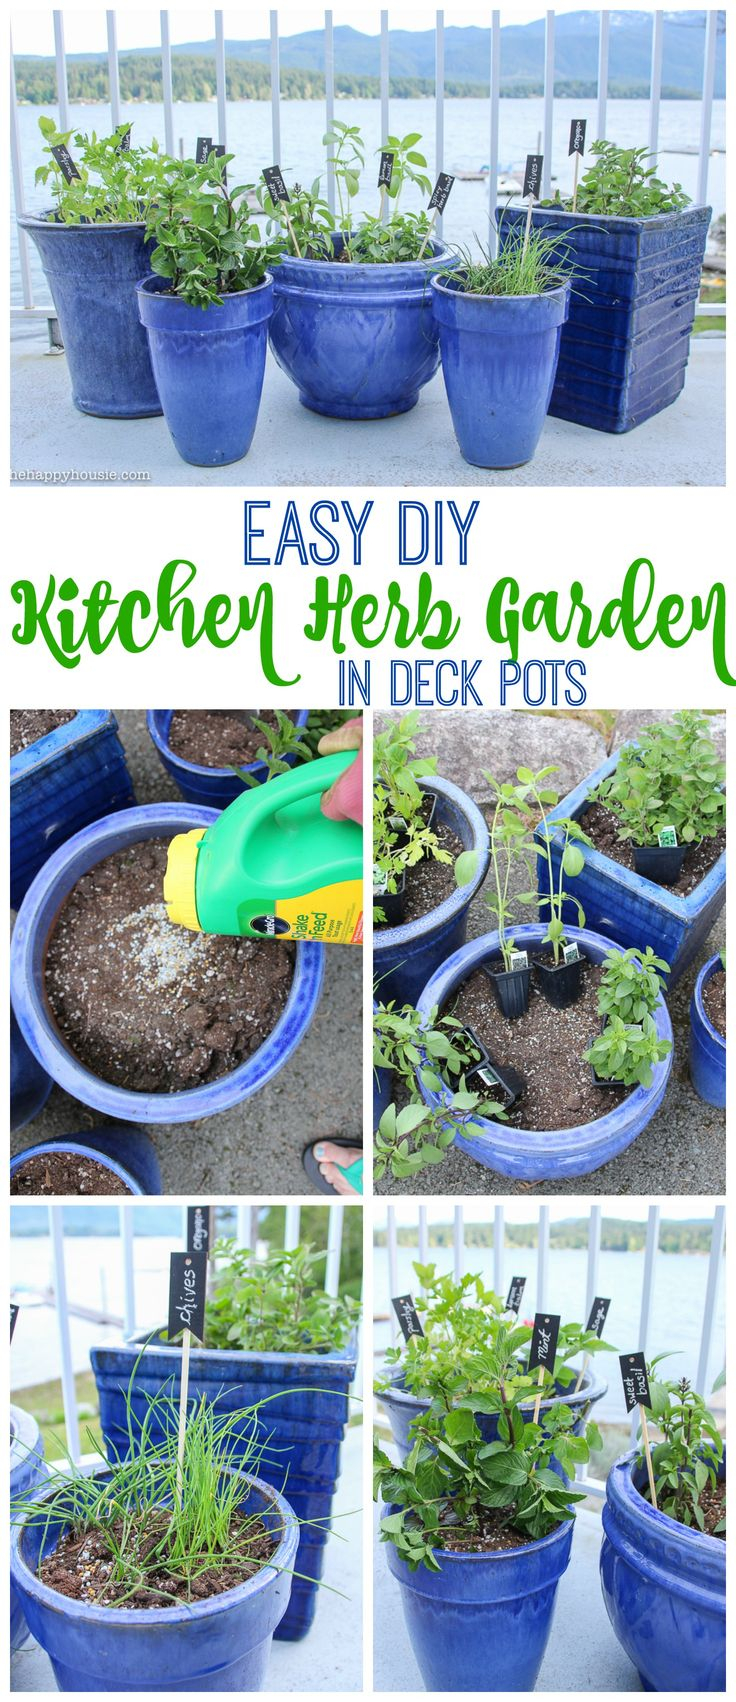 Easy DIY Kitchen Herb Garden in Deck Pots